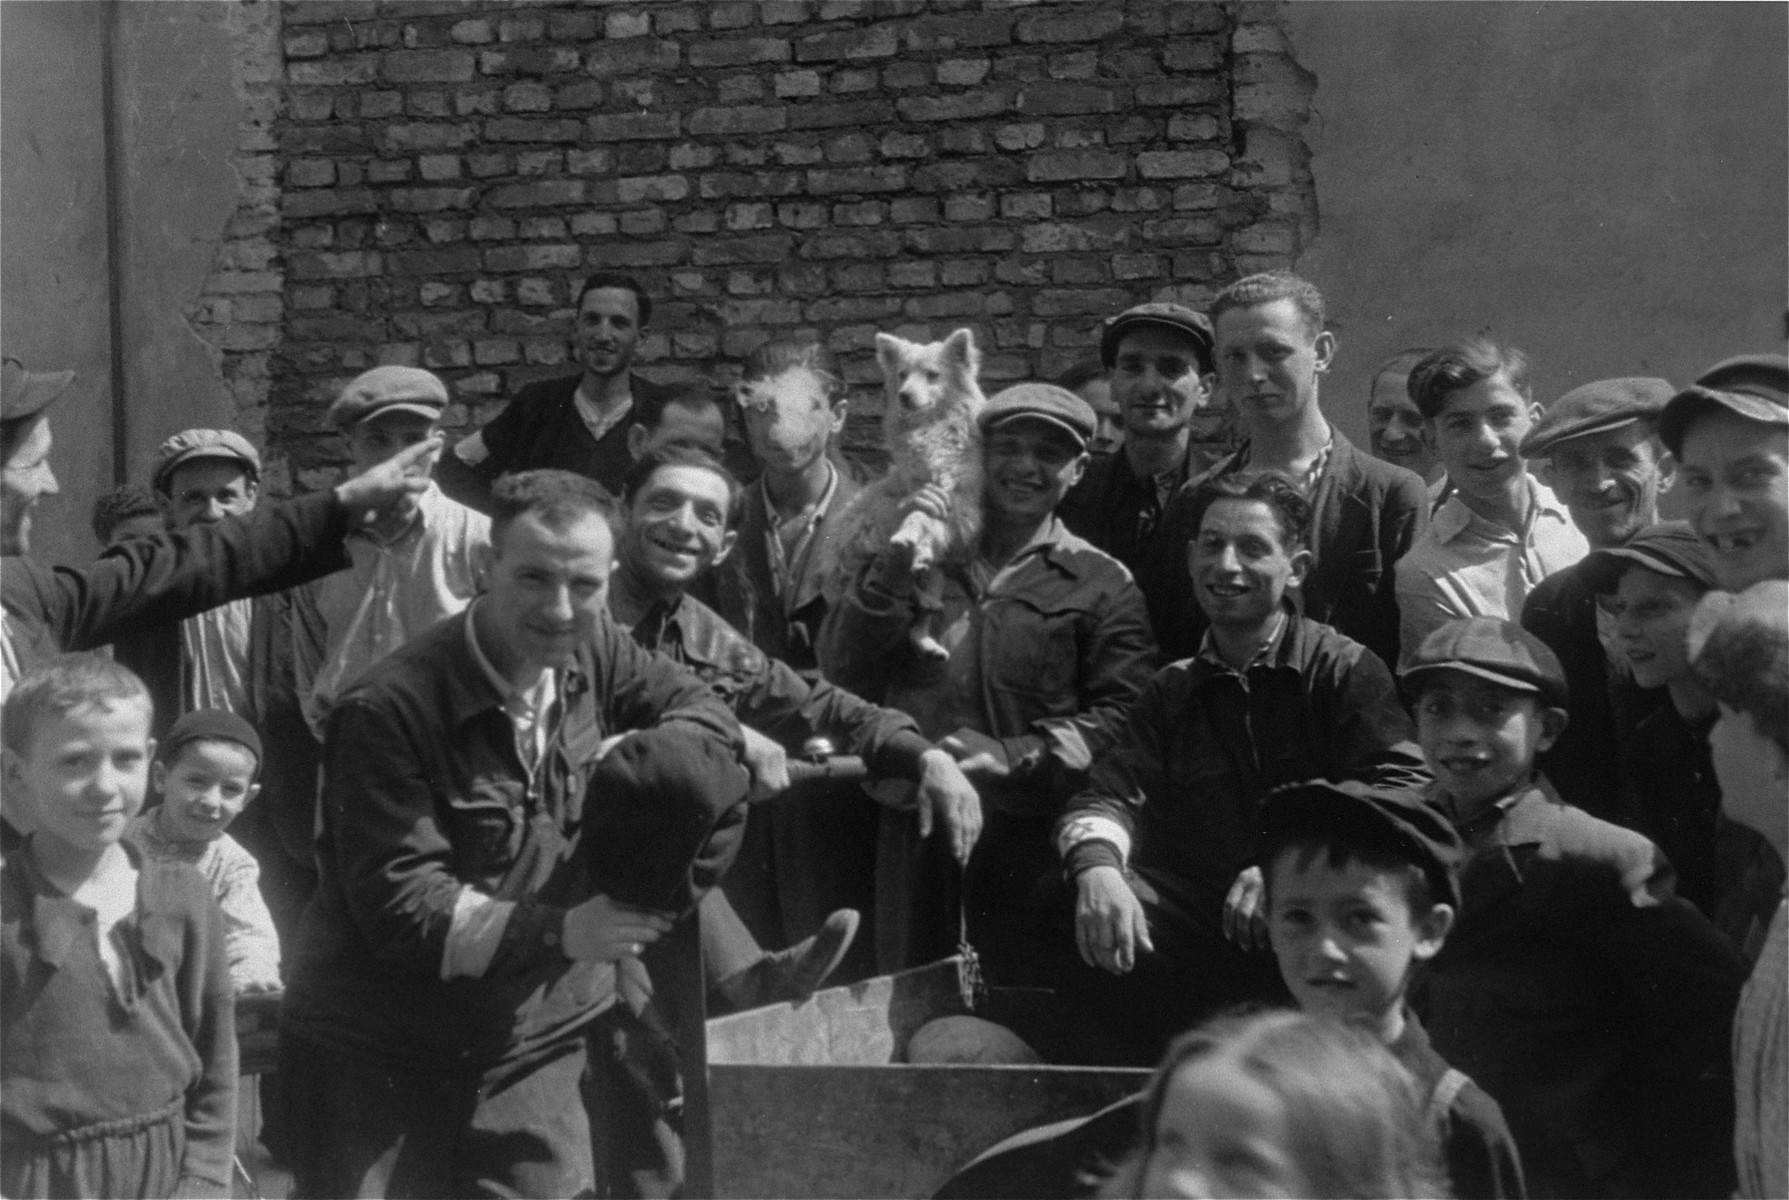 Jews are gathered on a street in the Warsaw ghetto.